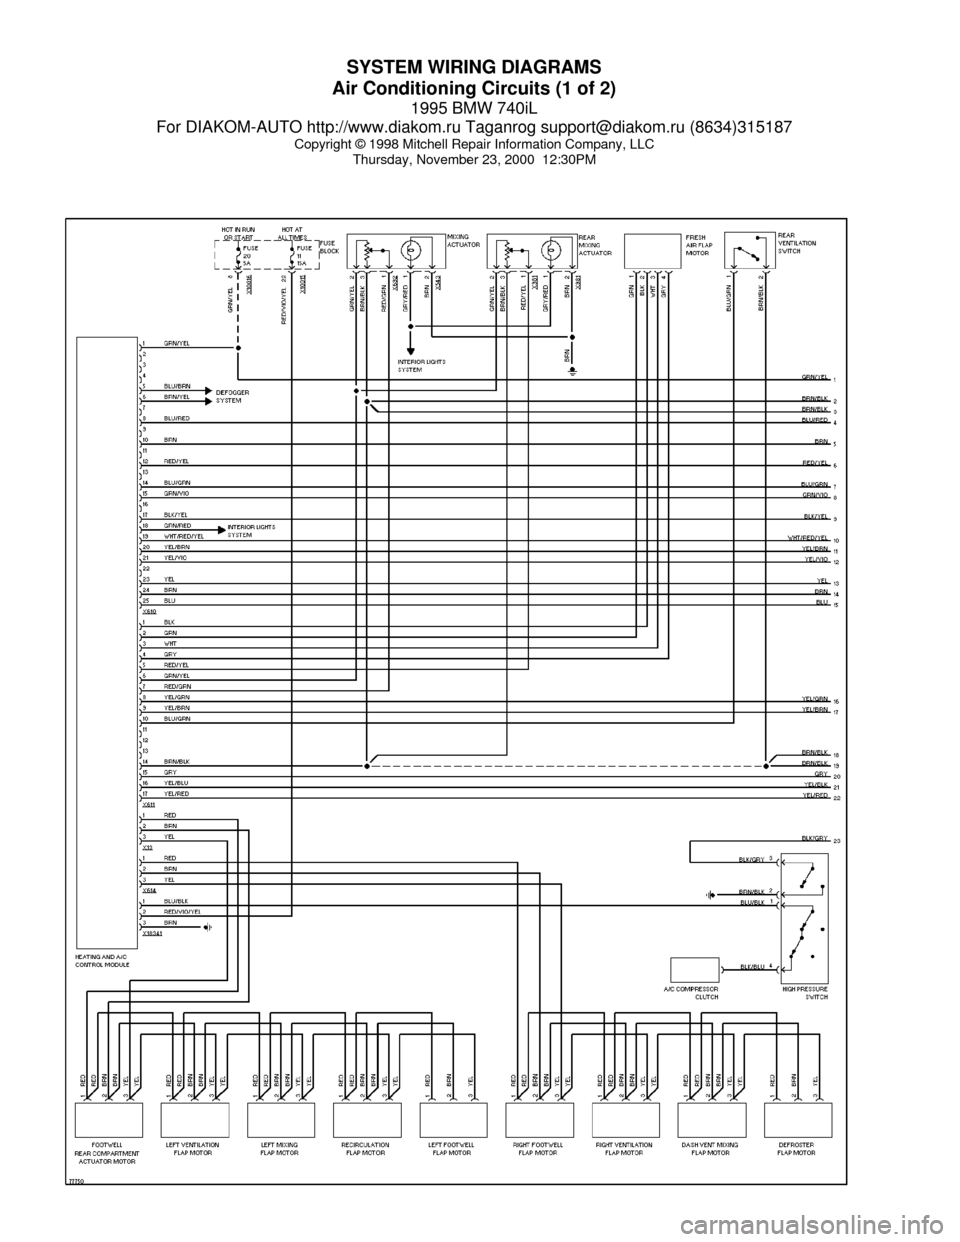 w960_2820-3 Understanding Bmw Wiring Diagrams on understanding engineering drawings, understanding ladder diagrams, understanding foundation diagrams, electronic circuit diagrams, understanding circuits diagrams, understanding electrical diagrams, understanding schematic diagrams, understanding transformer diagrams, pinout diagrams,